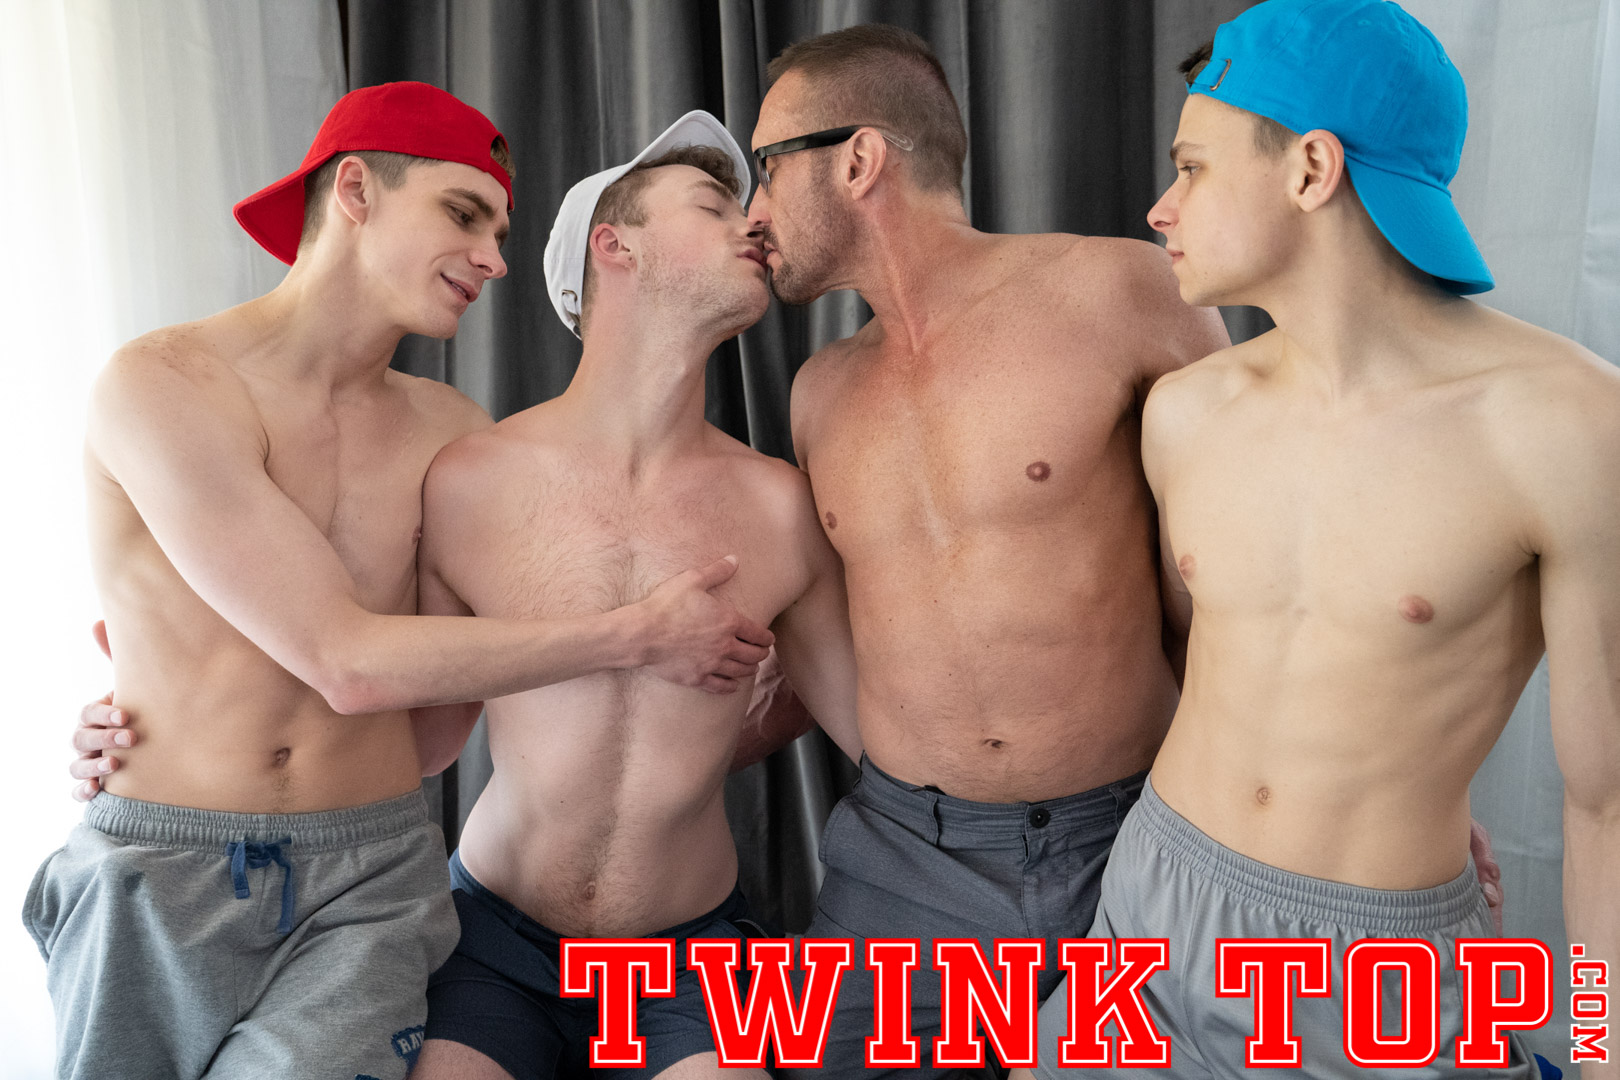 Twink Top – Austin Young, Cole Blue, Marcus Ryan, Myles Landon